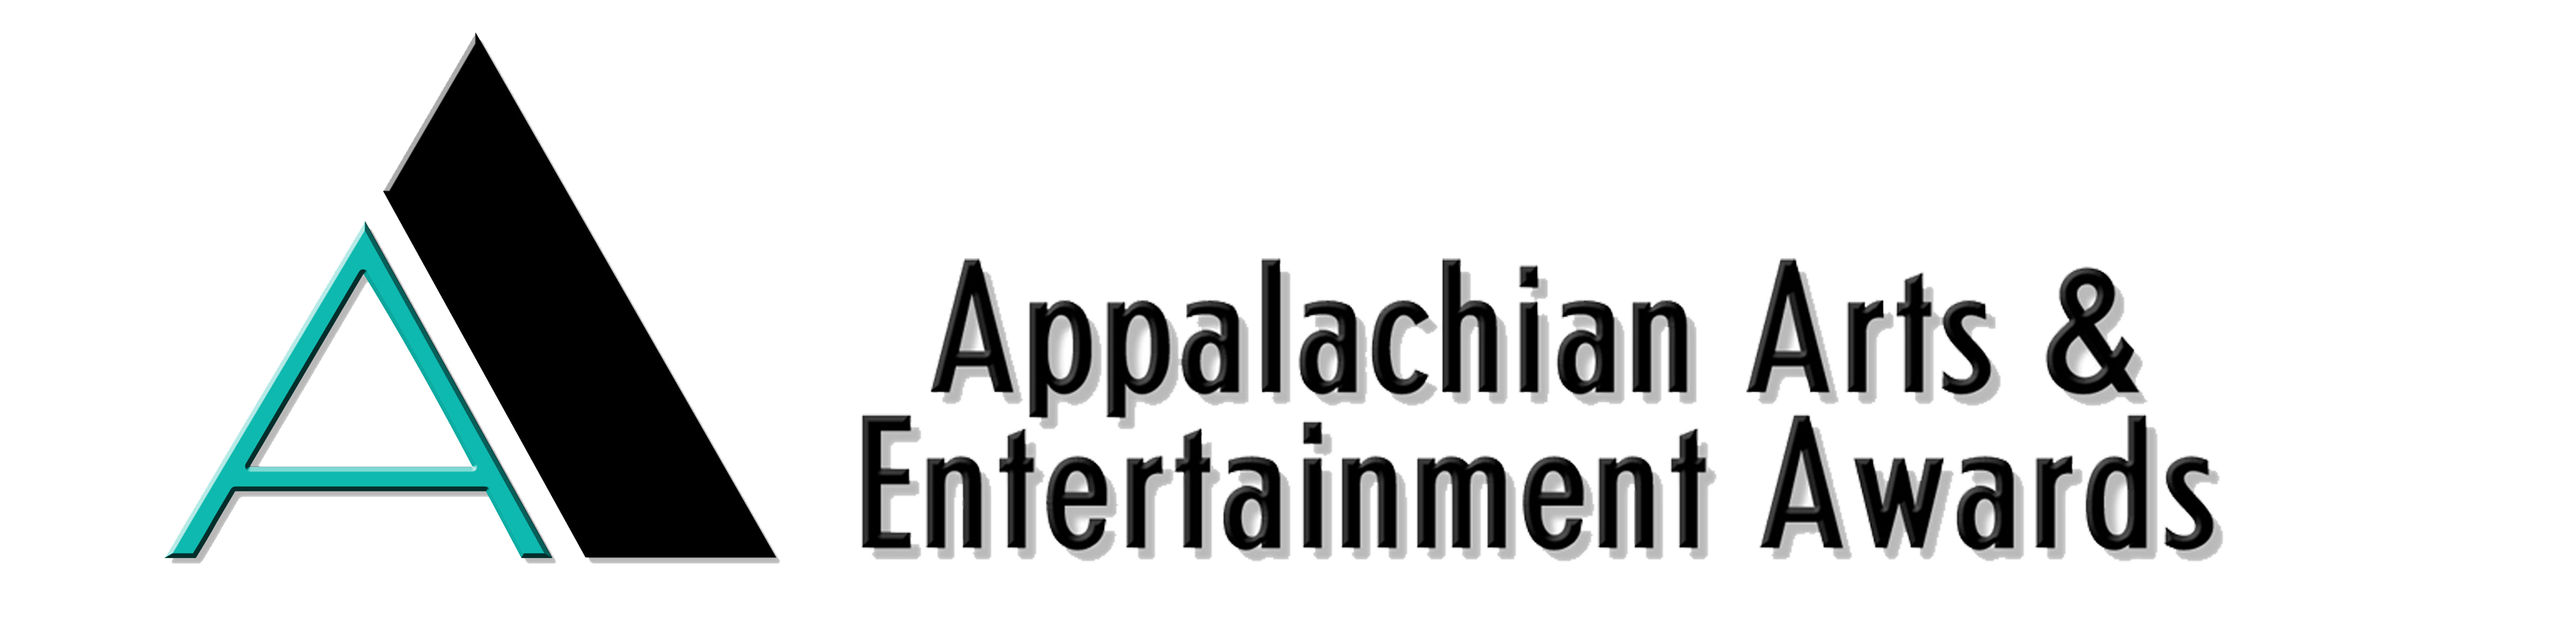 Appalachian Arts & Entertainment Awards